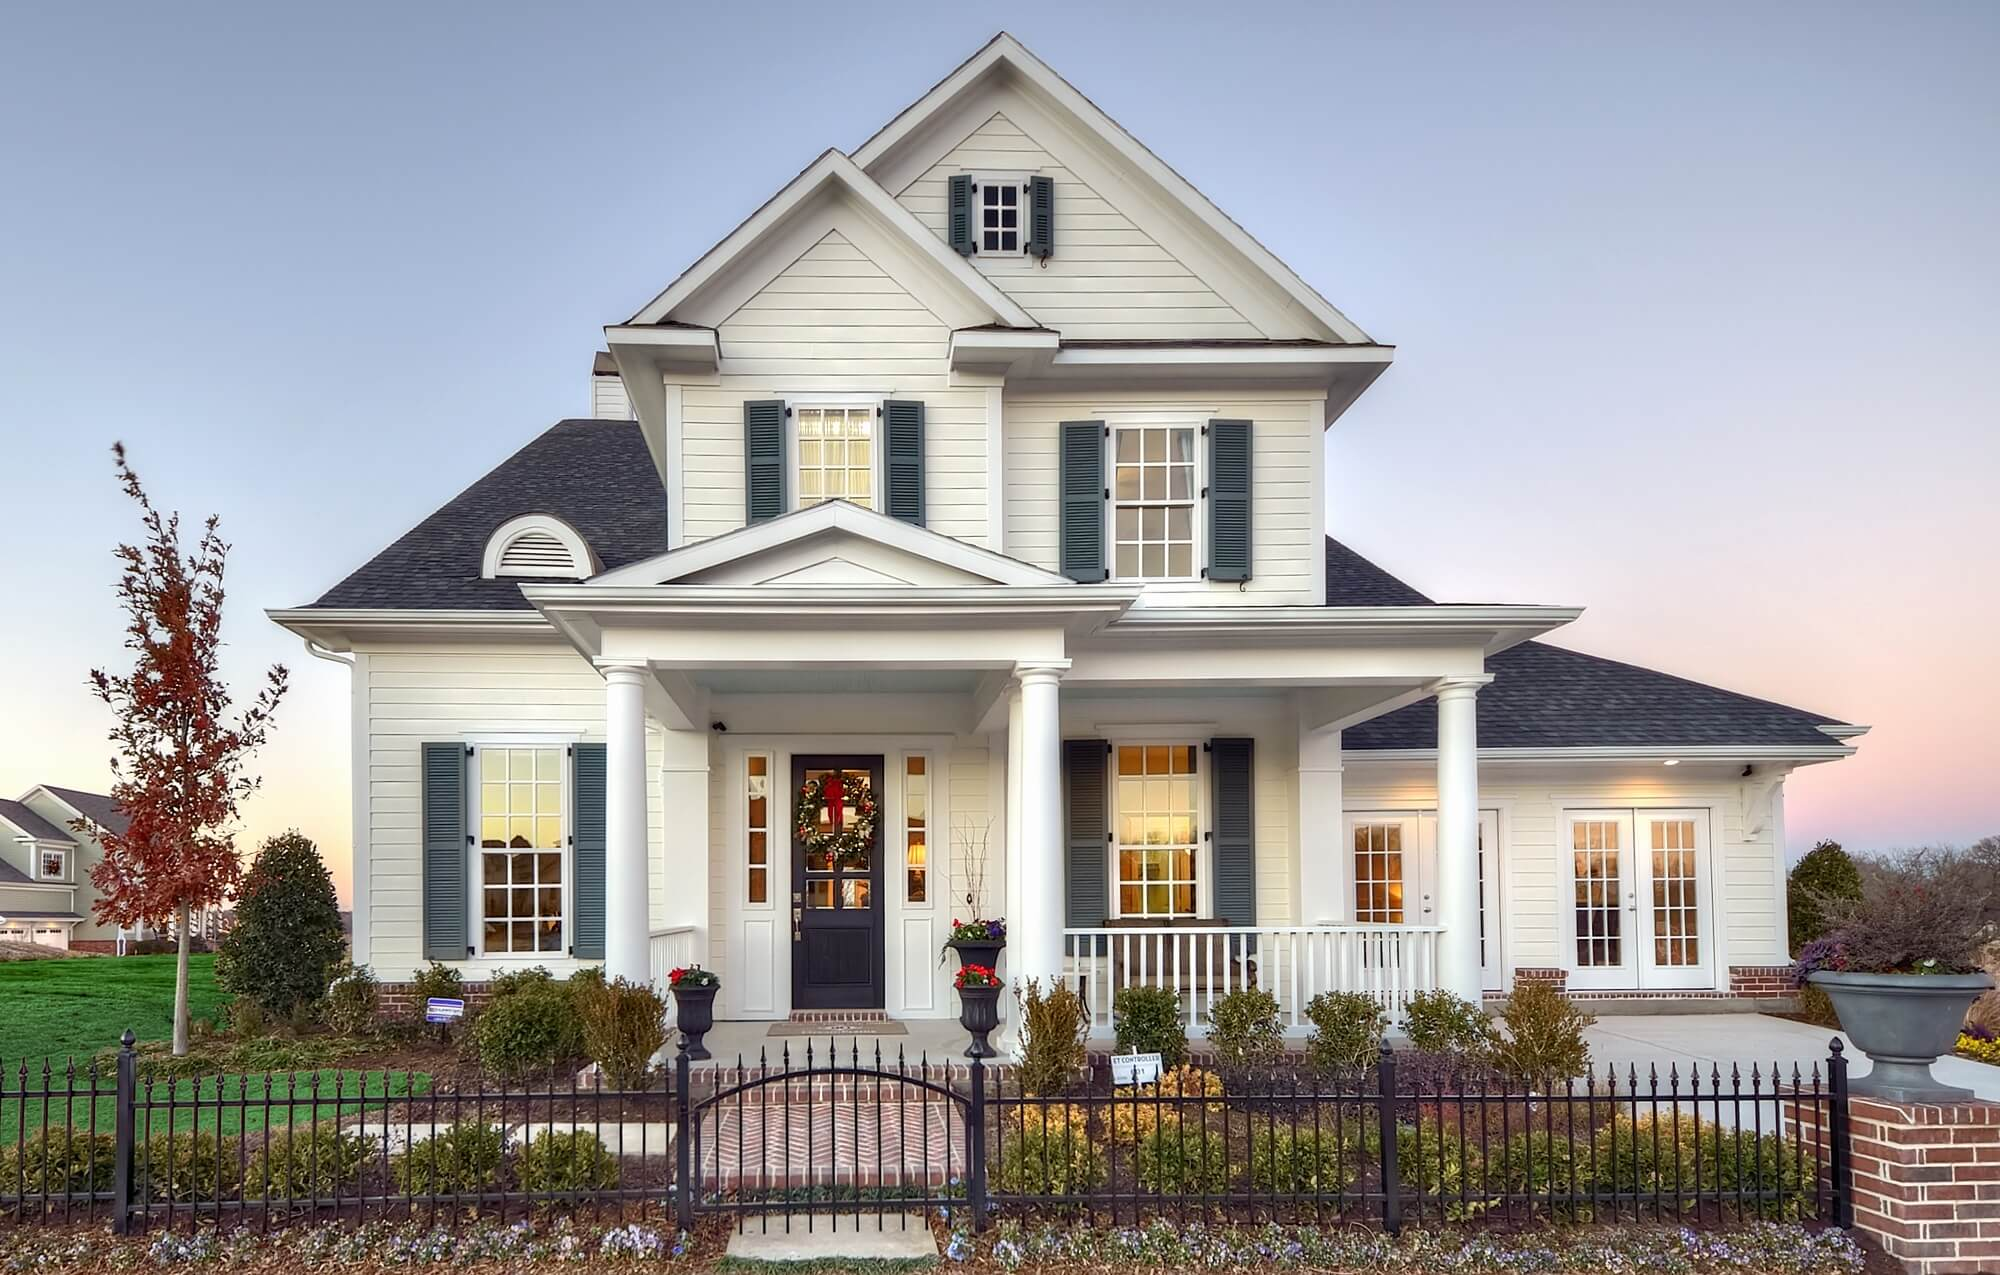 Top 12 Colonial Style Home Designs At Live Enhanced Live Enhanced